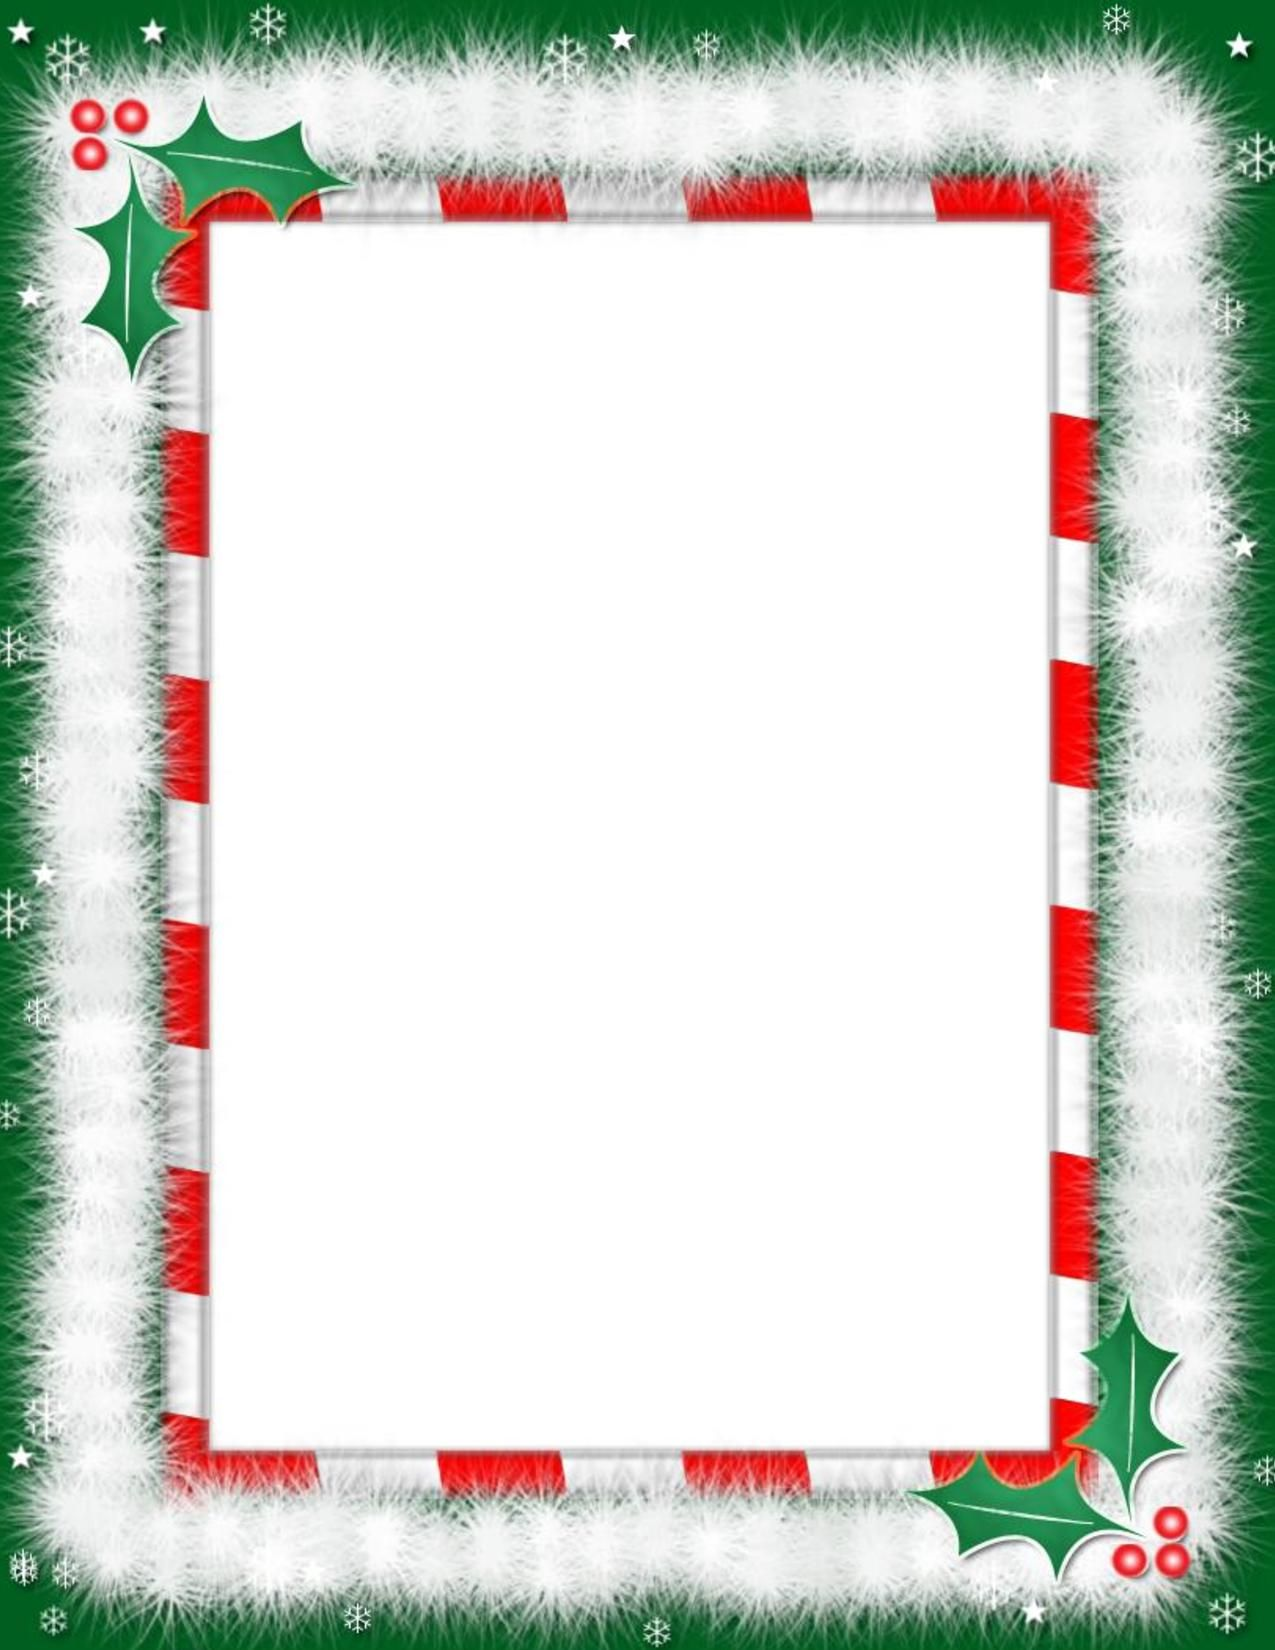 Heart Word Borders Templates Free | ... Borders For Word Documents Christmas  Borders To  Christmas Template Free